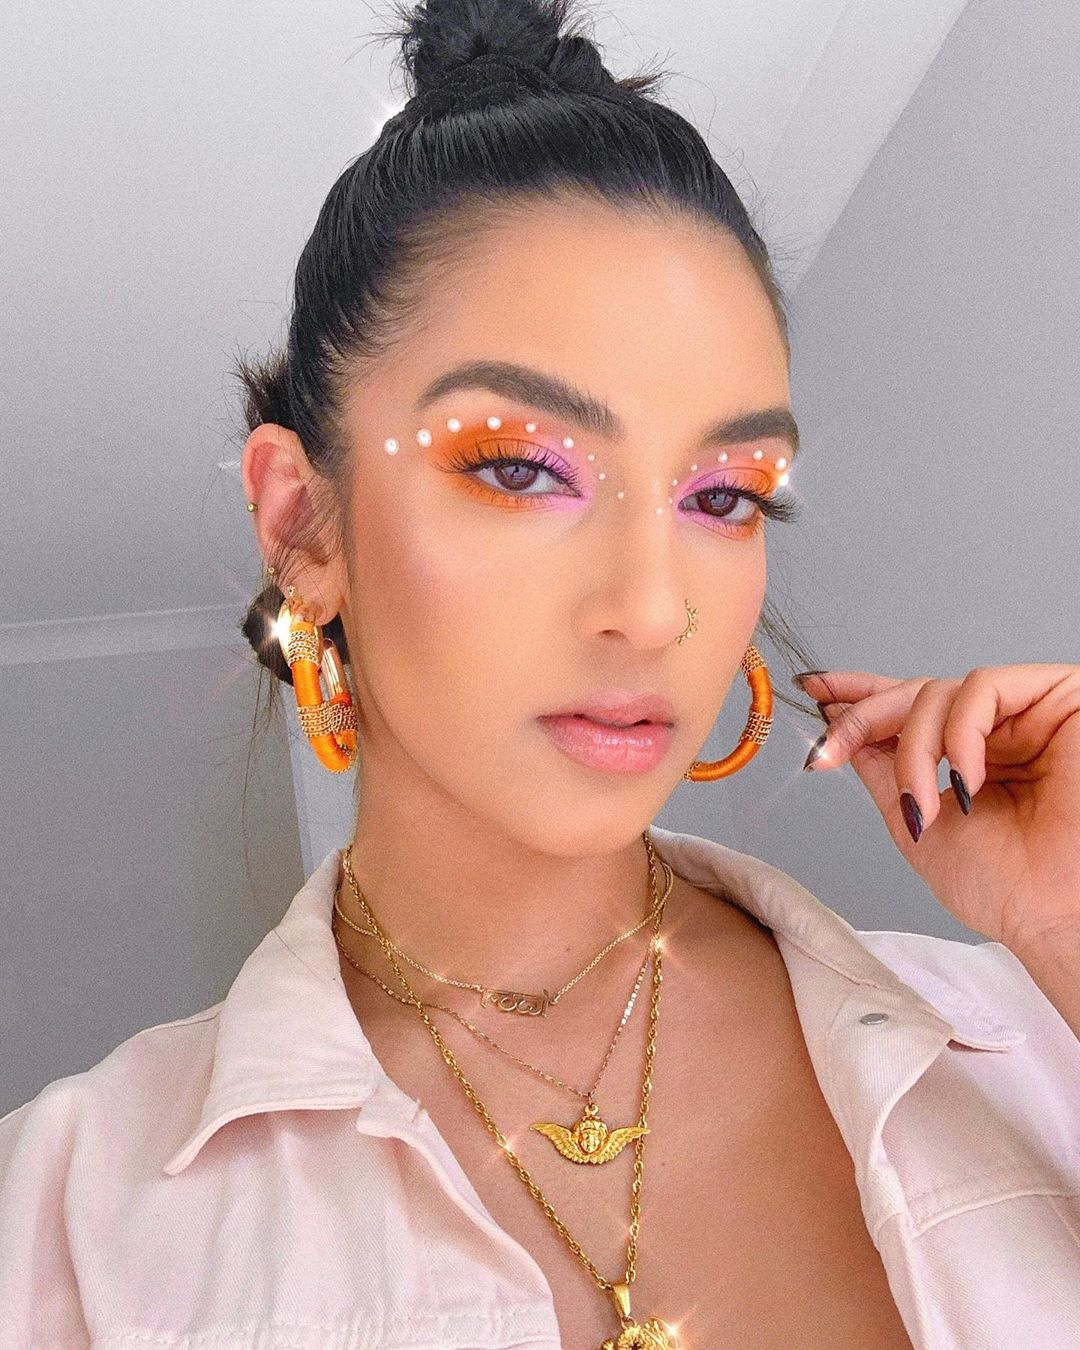 pearl makeup trend 2020 white girl in Nigeria Africa